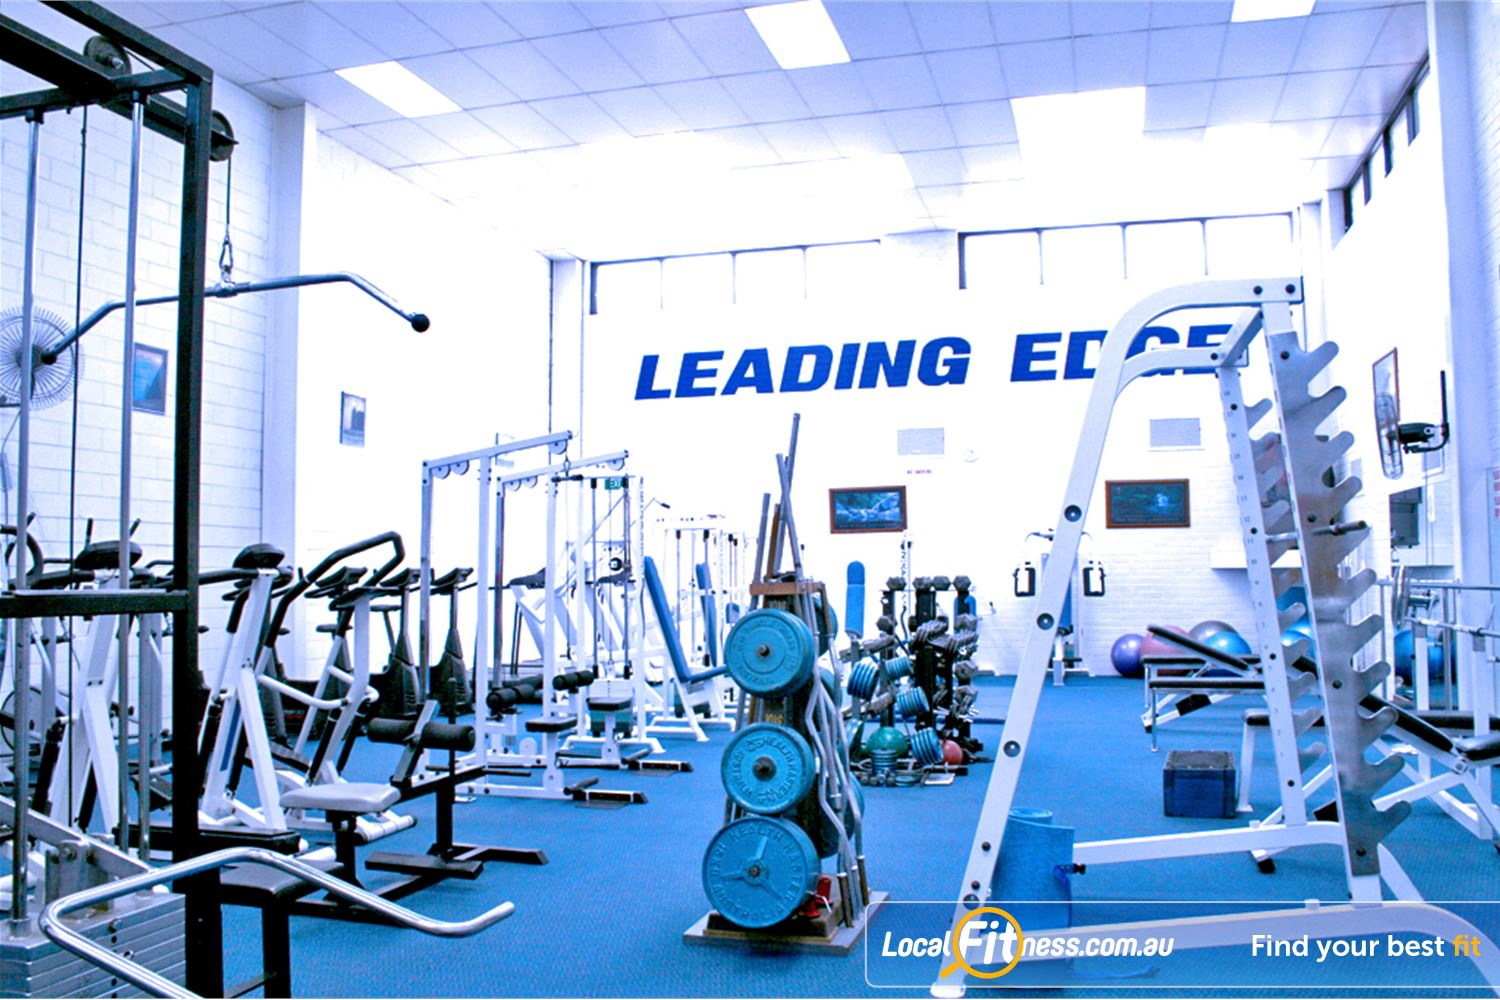 Leading Edge Health & Fitness Glen Waverley The small, friendly and personal Glen Waverley gym.